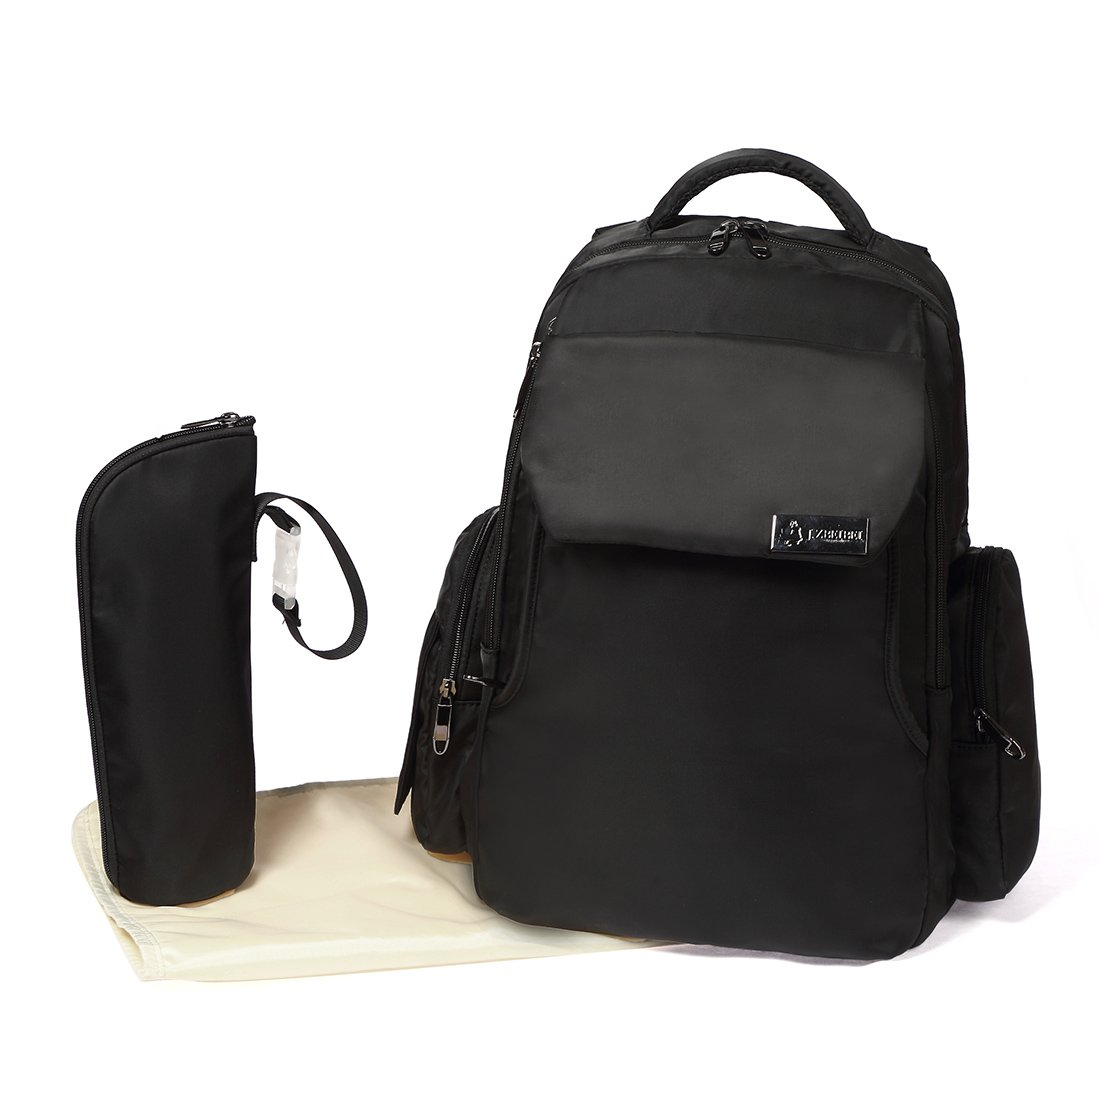 Diaper Bag Backpack for Baby Care Multi-Functional Waterproof Baby Nappy Changing Bag…